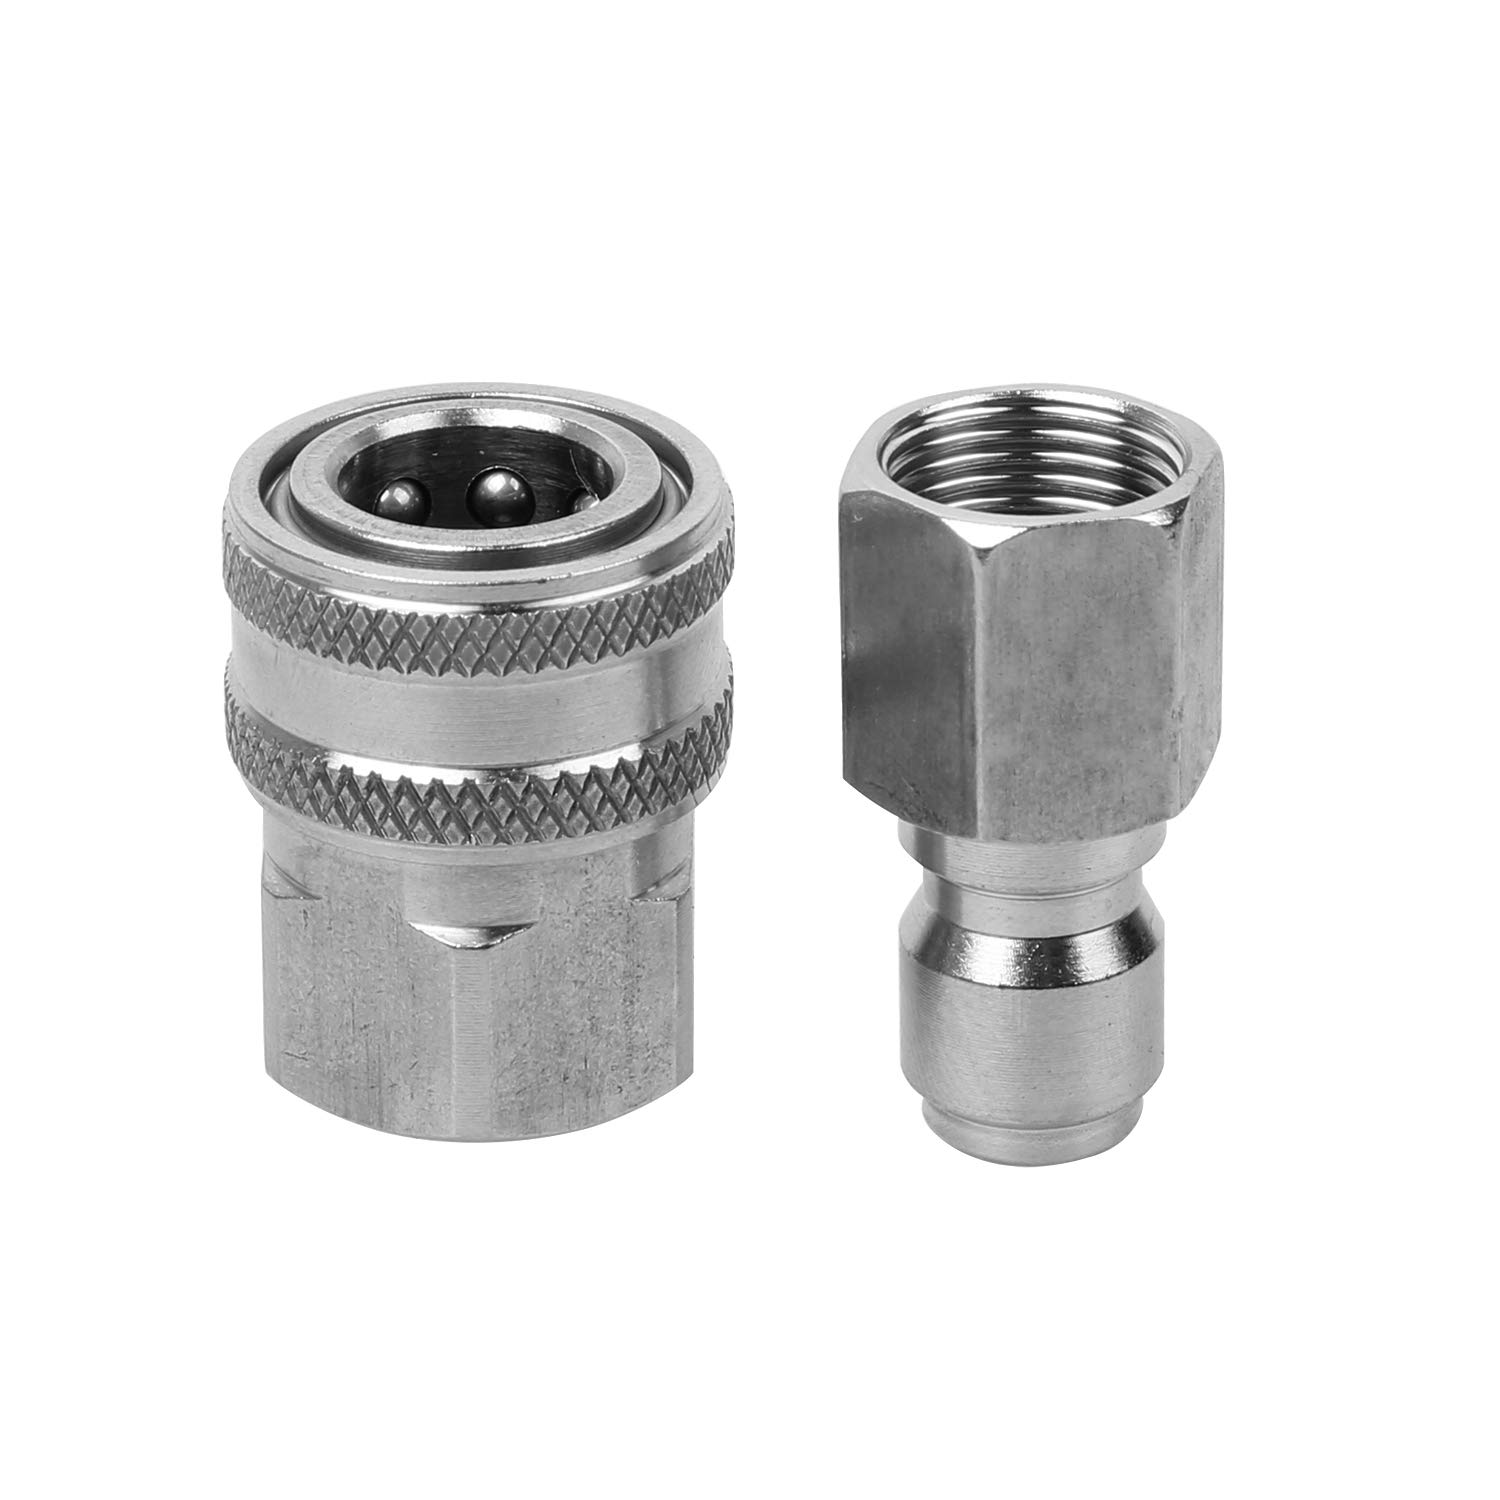 Sooprinse Stainless Steel Quick Connect Pressure Washer Adapter Set 3/8-Inch Female Quick Connect Plug and Socket for Attach a Hose to The Water Pumps, Hose Reels, Max Pressure 5000 PSI Rating